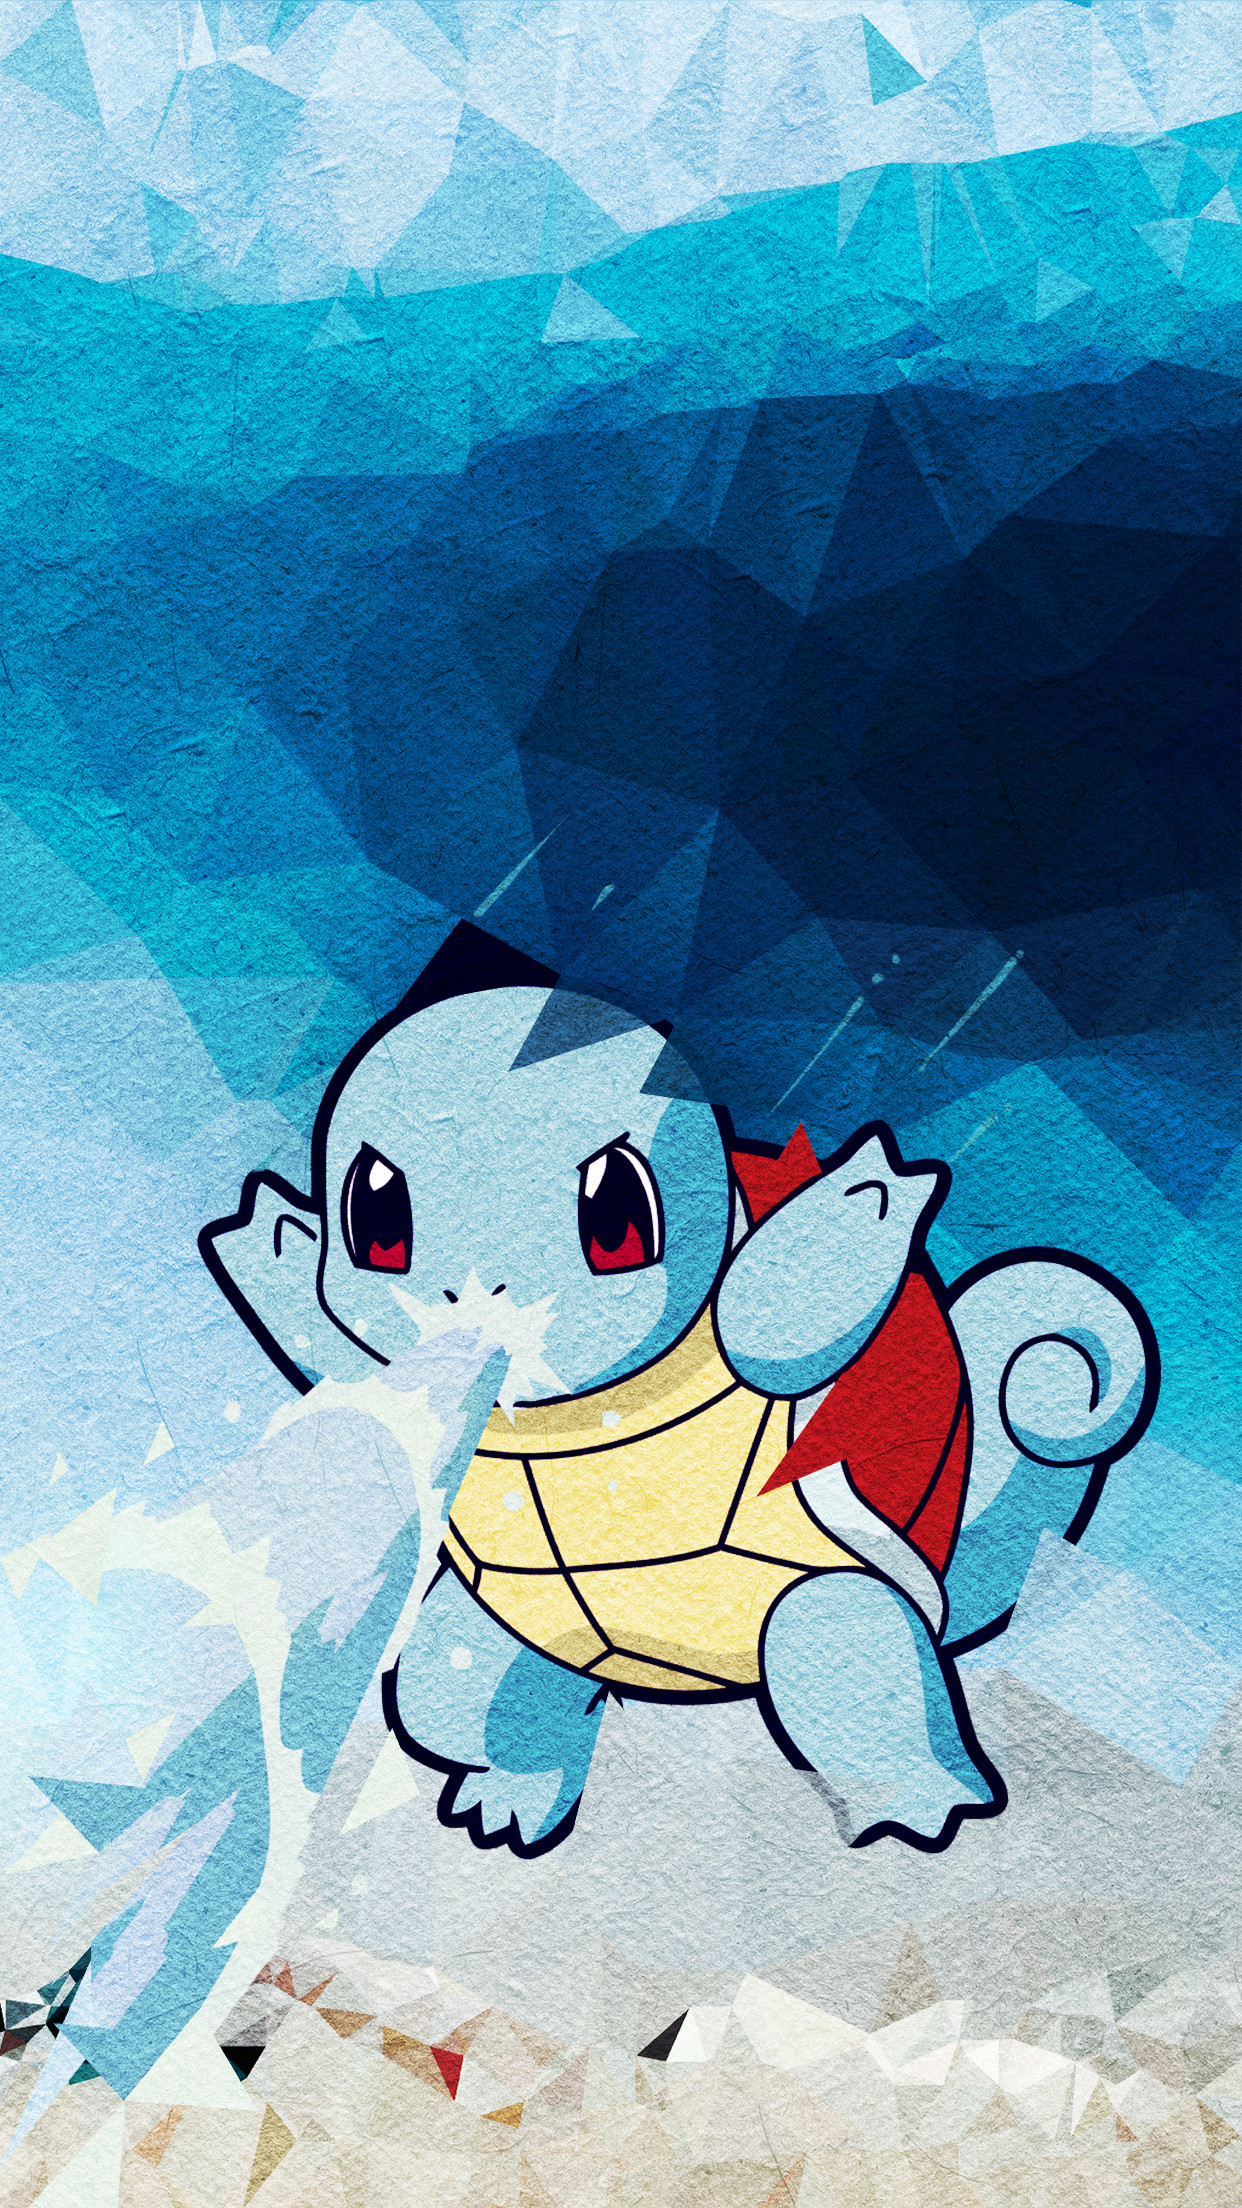 HD Pokemon iPhone Wallpapers 80 images 1242x2208